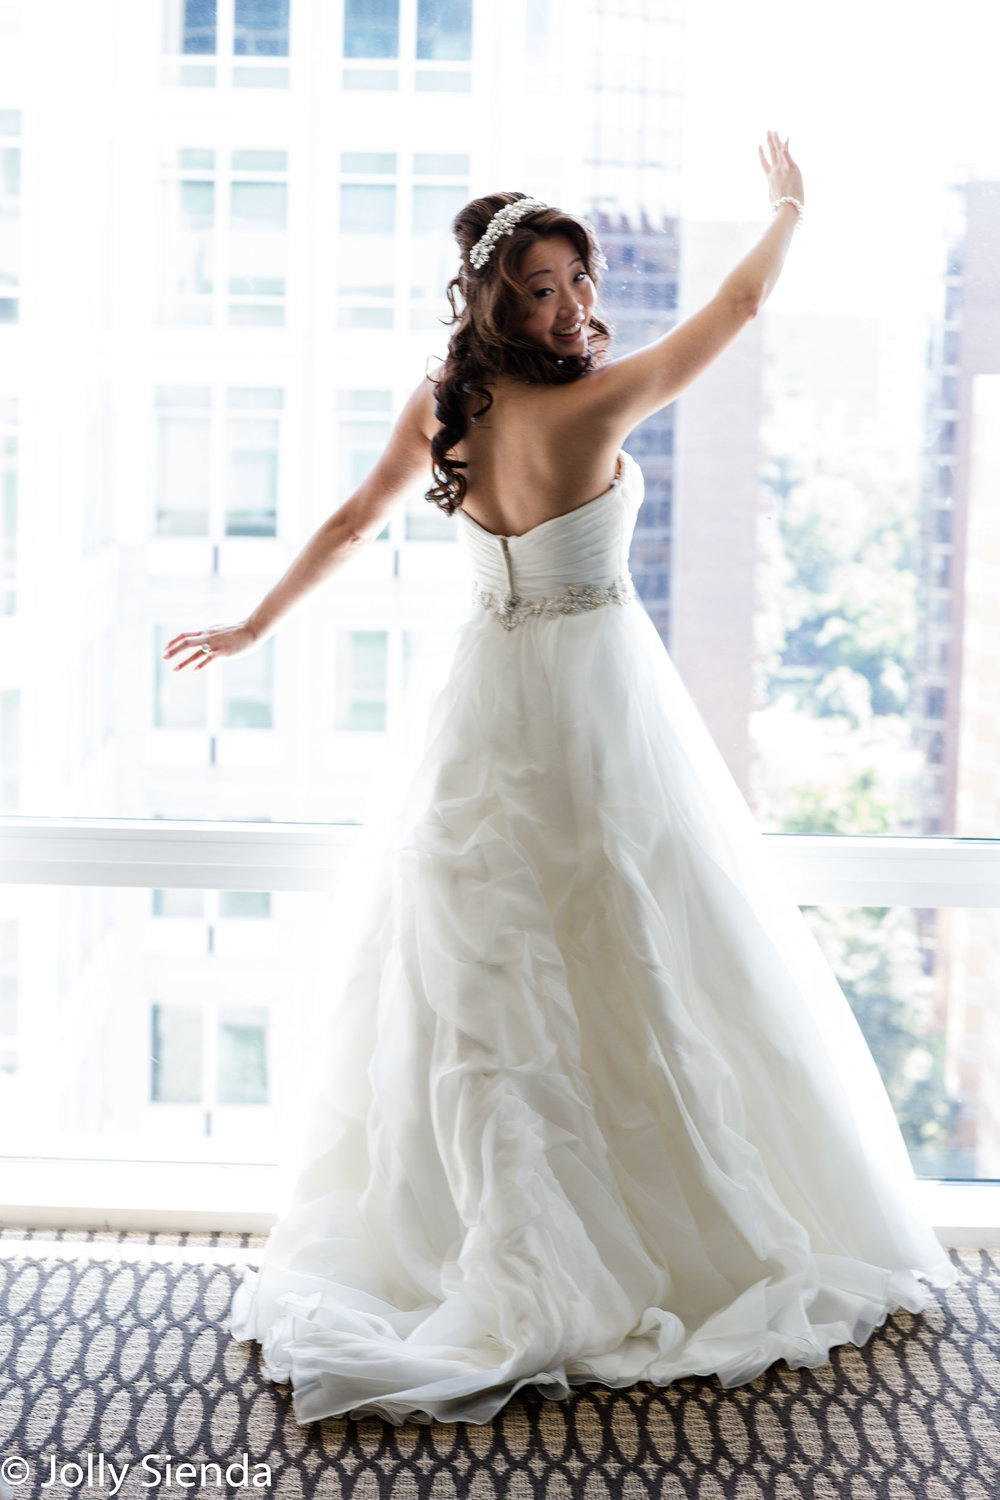 Bride and the back of her gown